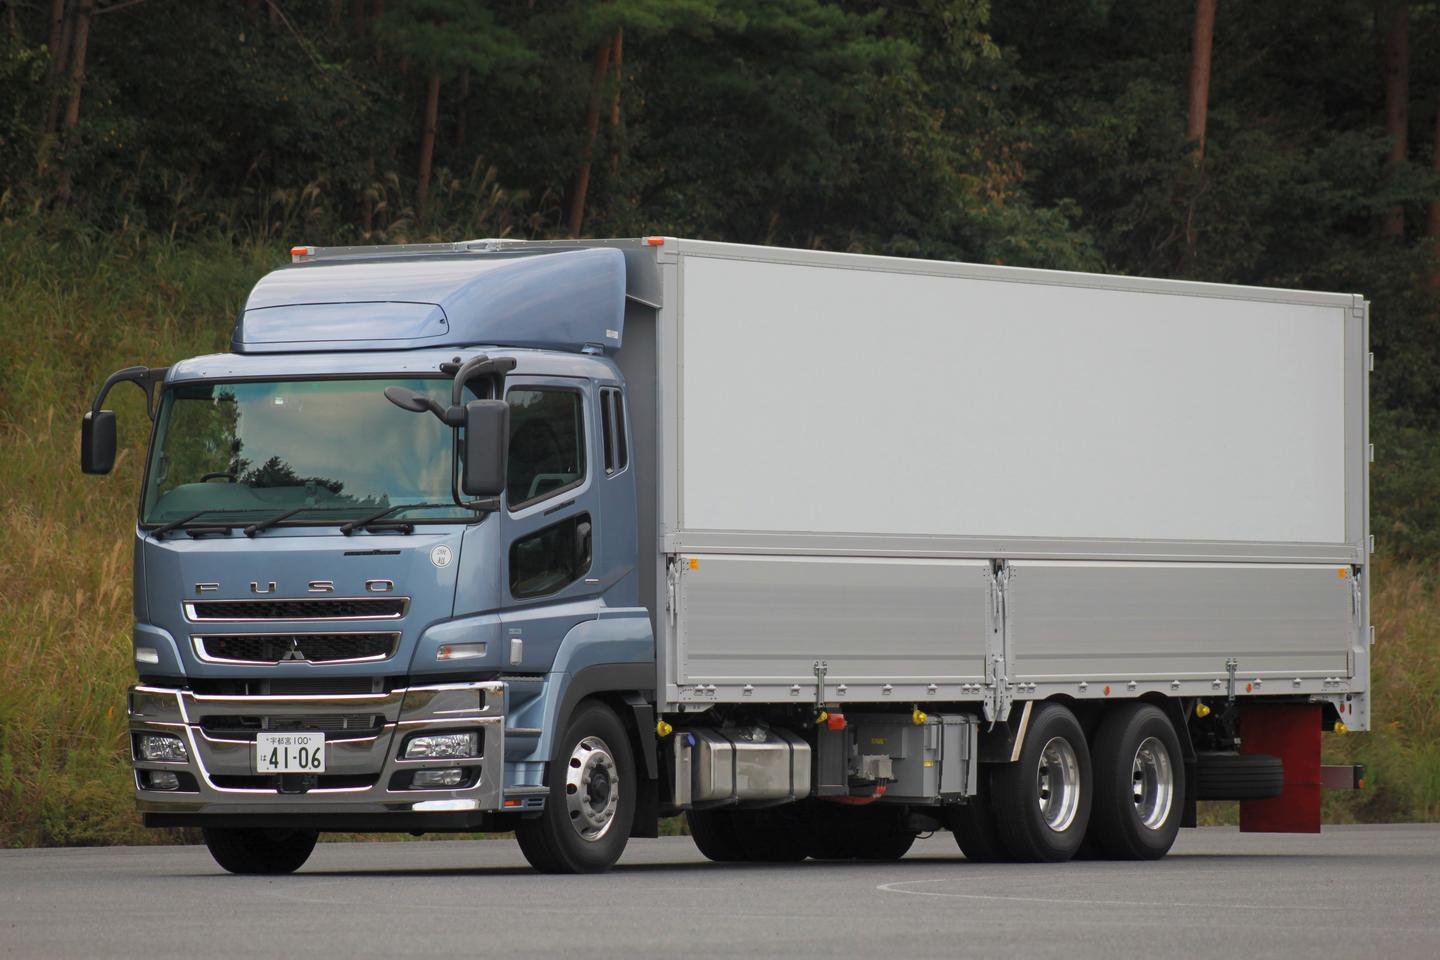 The Fuso Super Great HEV heavy-duty truck concept vehicle that will be on show at the 2011 Tokyo Motor Show